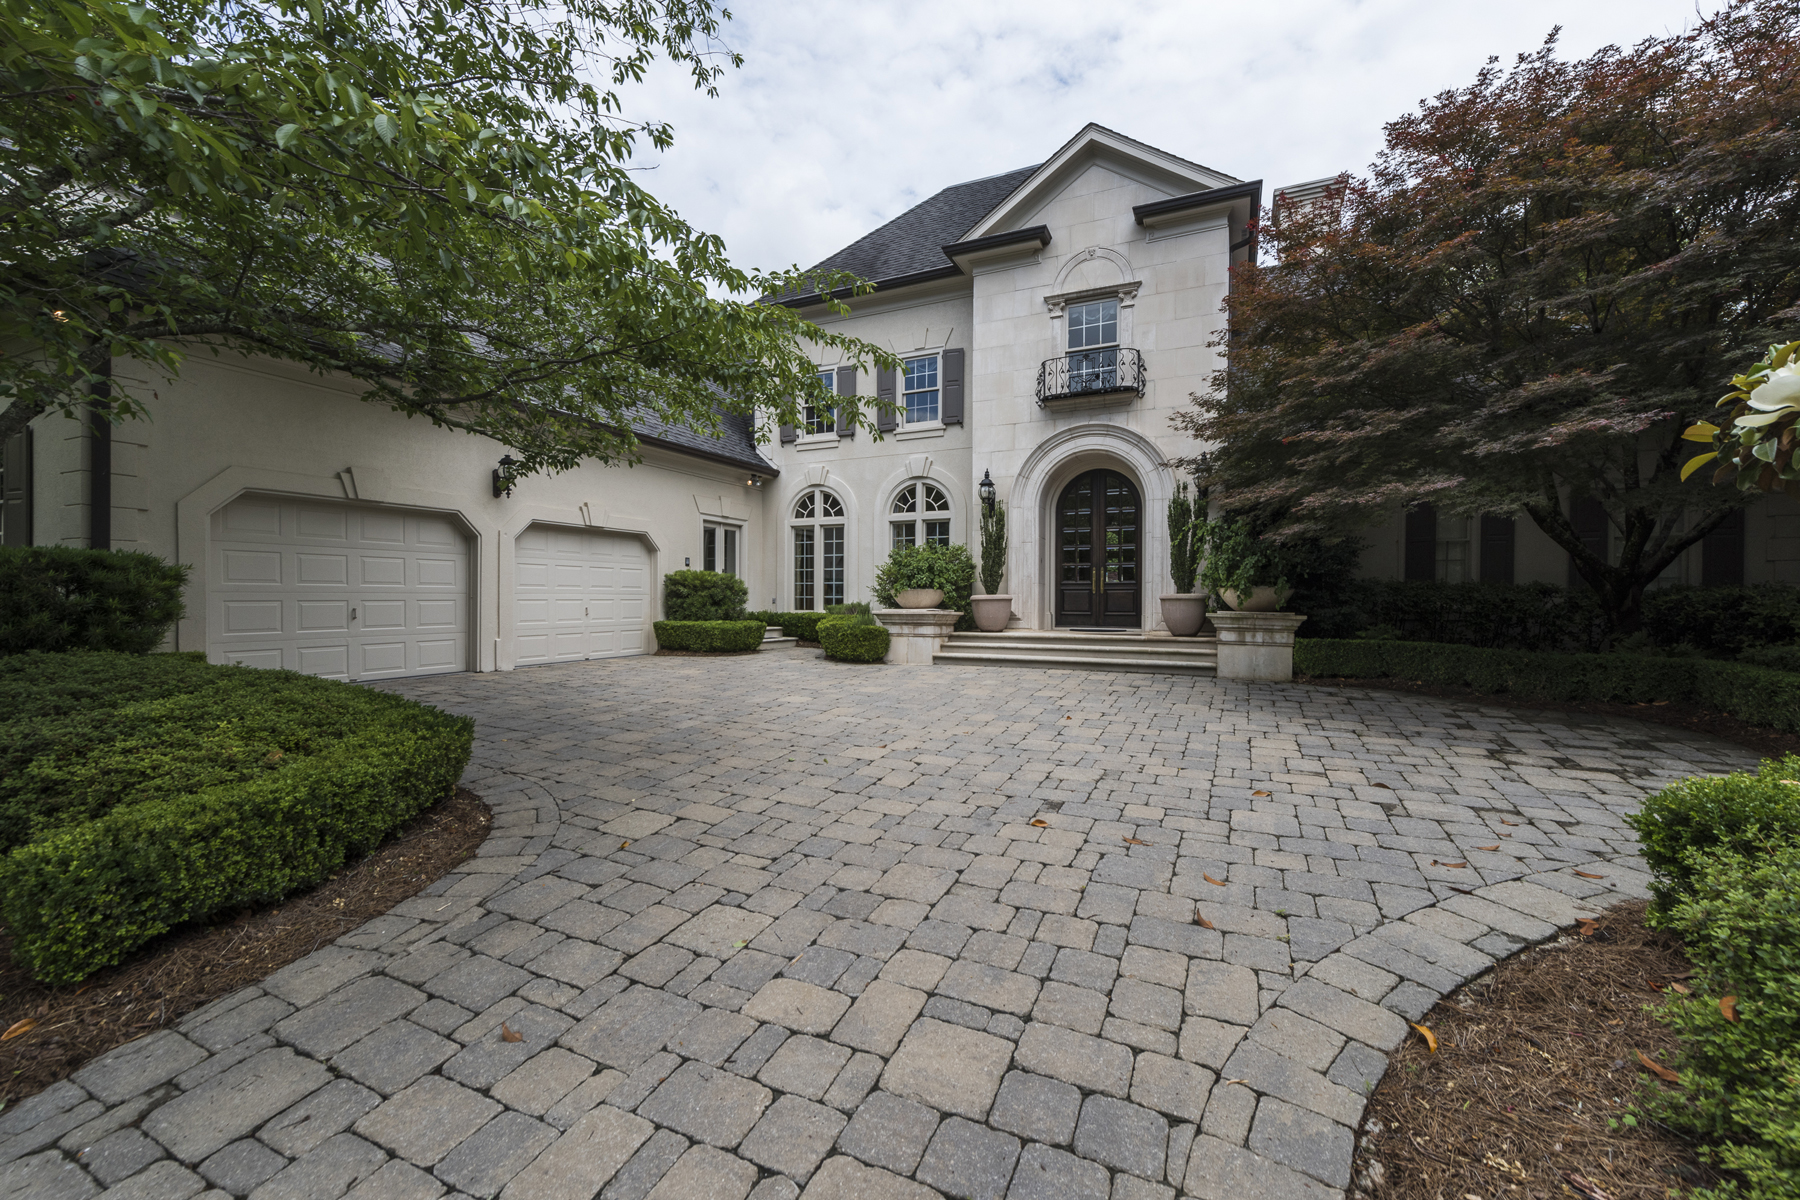 獨棟家庭住宅 為 出售 在 Elegant Home On Sought After Cul-de-sac In Heart Of Buckhead 3233 Andrews Court NW Buckhead, Atlanta, 喬治亞州, 30305 美國